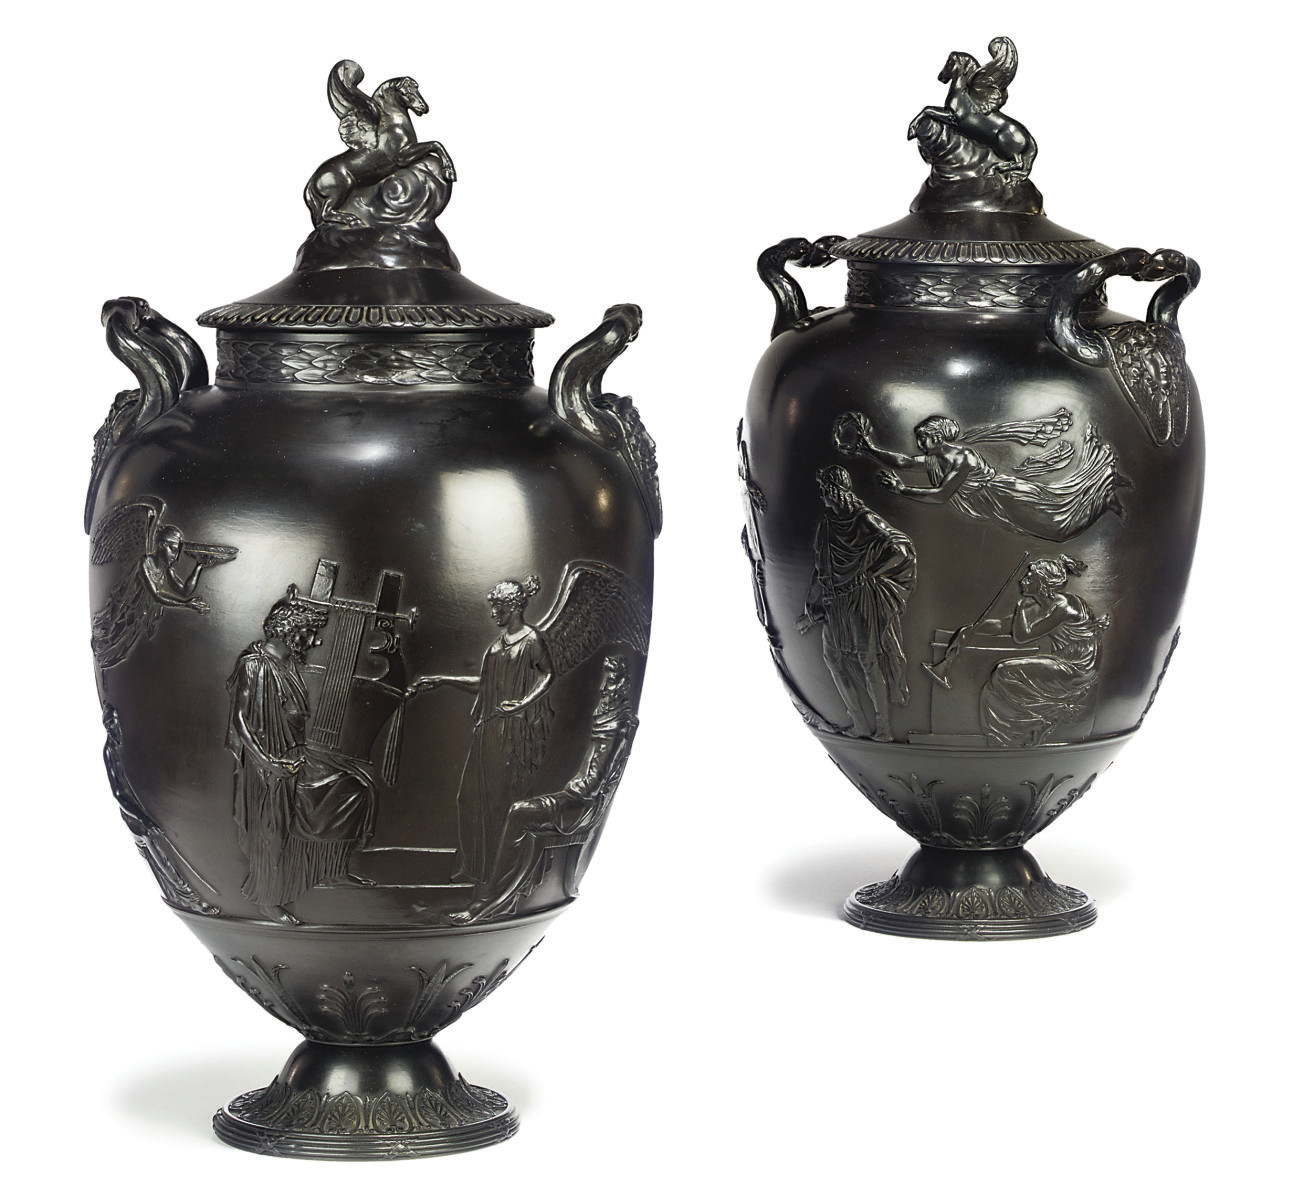 A PAIR OF WEDGWOOD BLACK BASALT 'PEGASUS' VASES AND COVERS